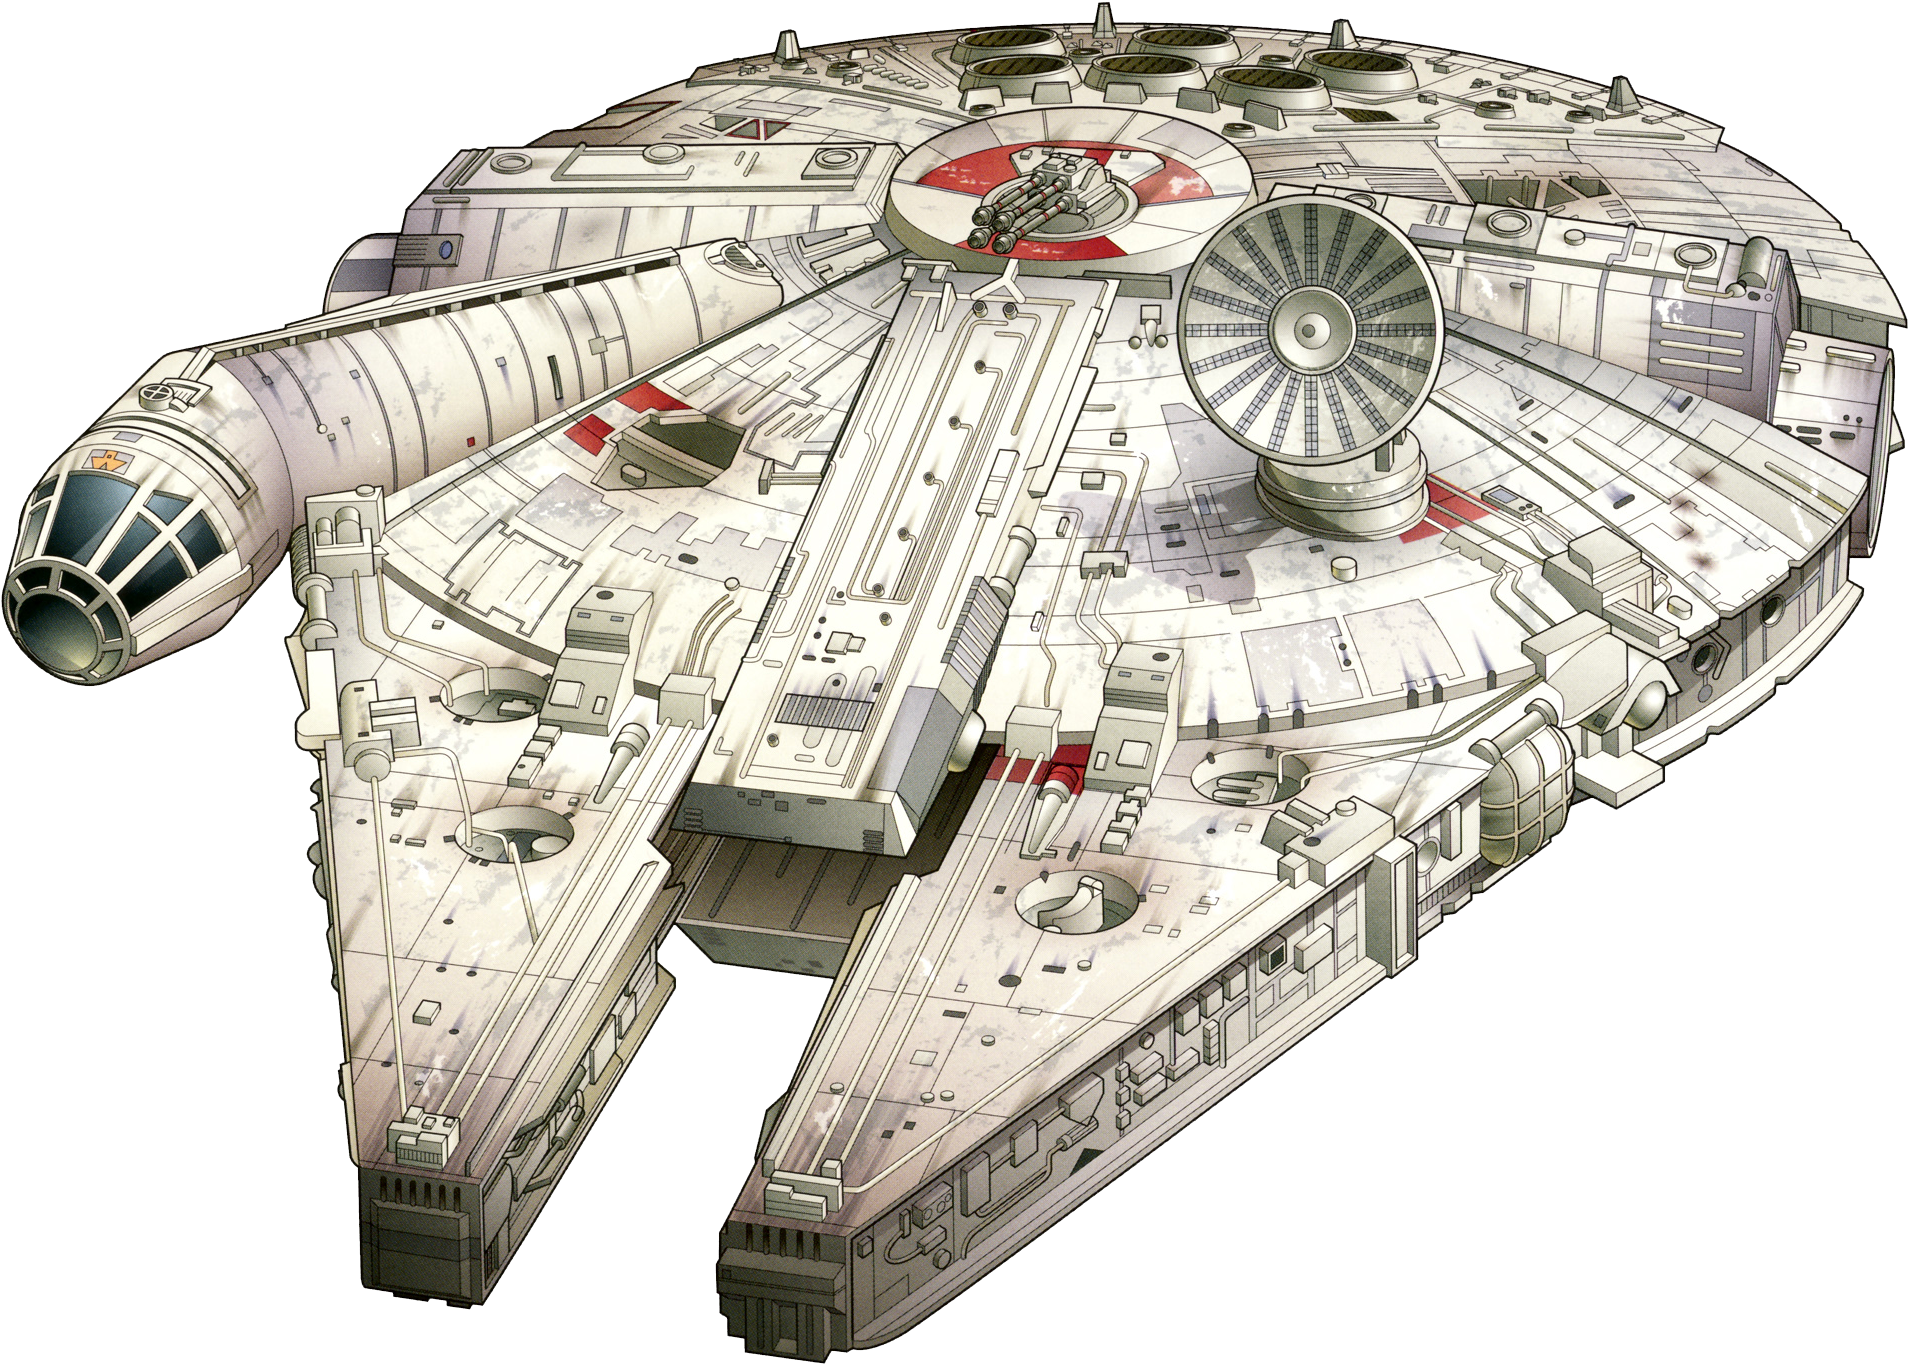 The Millennium Falcon Star Wars Space Ship Sketch Full Size Png Download Seekpng